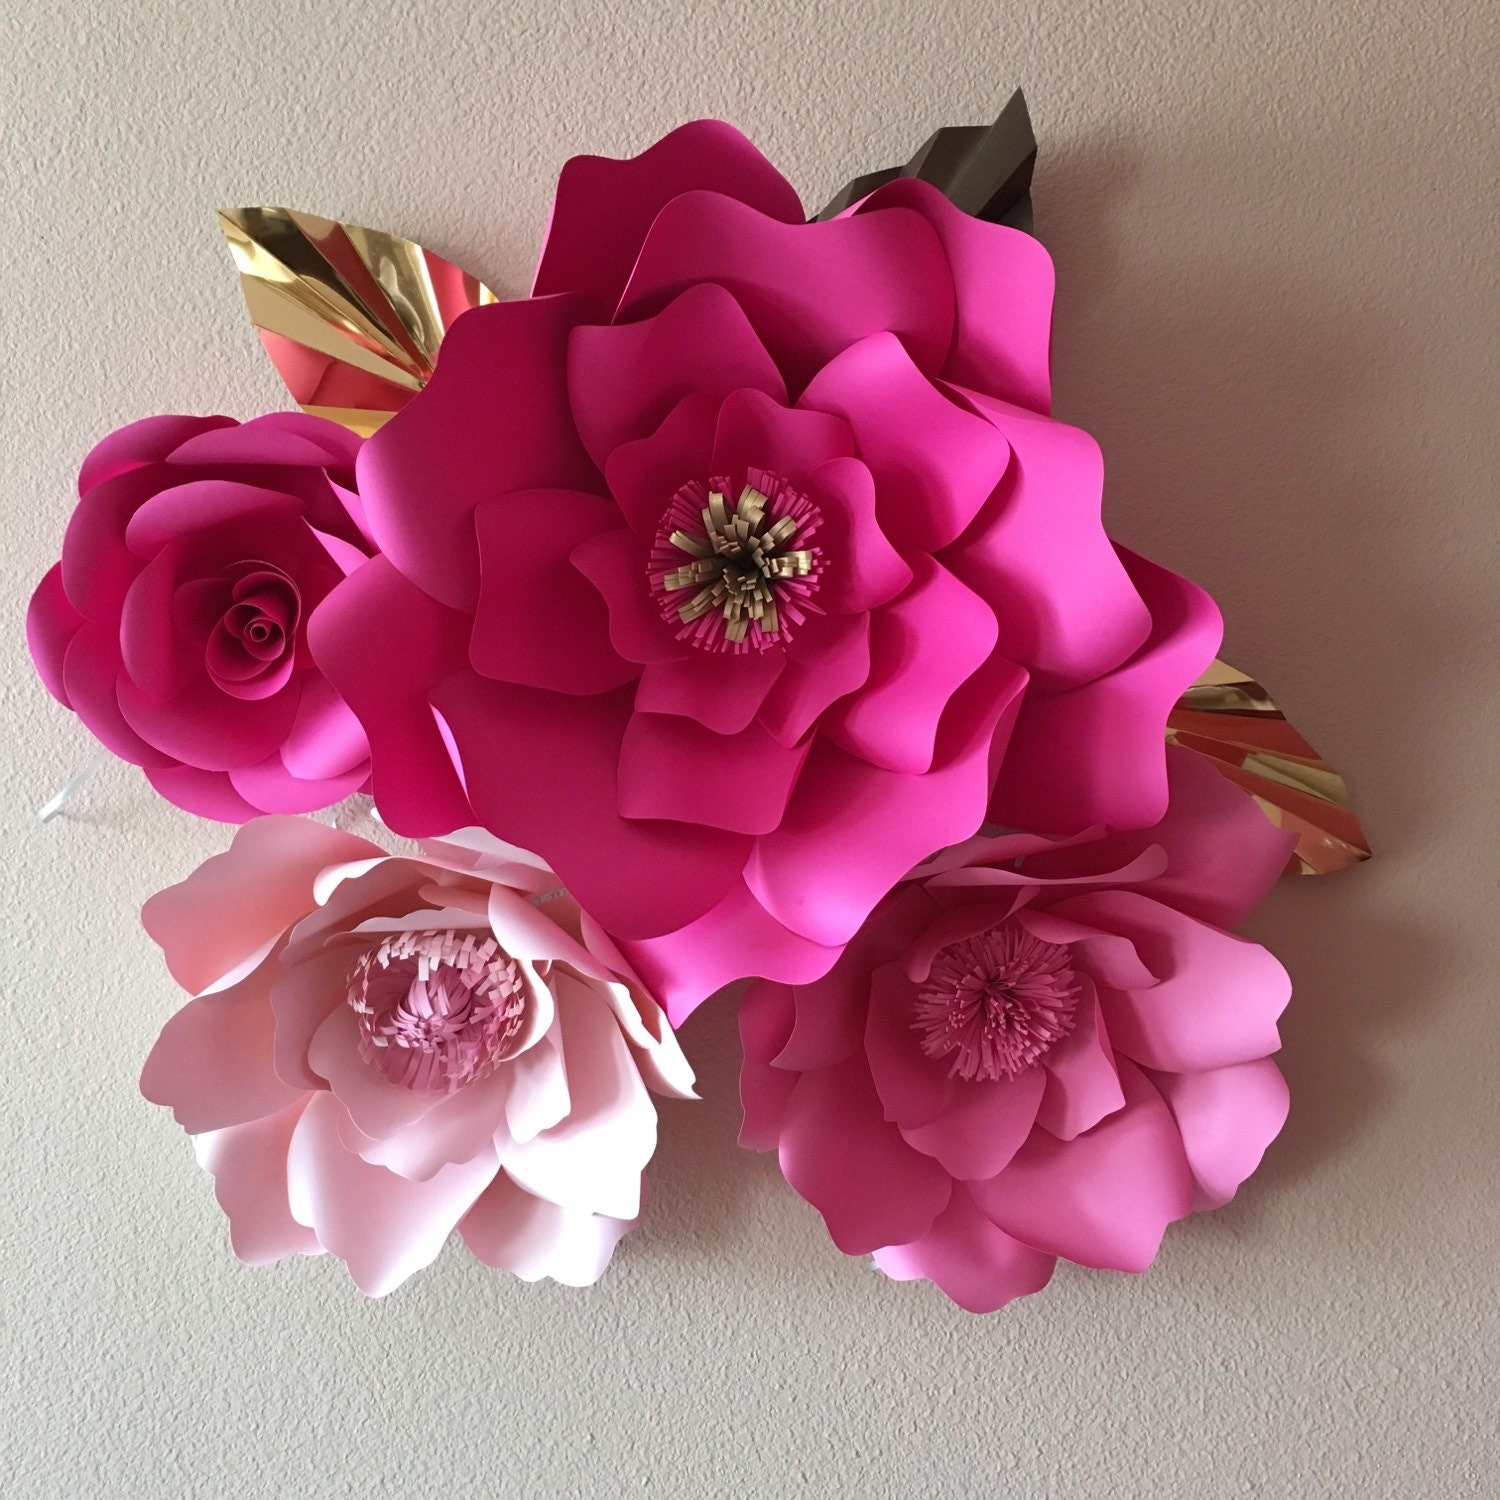 4 Giant paper flowers Kate Spade inspired colors giant flower